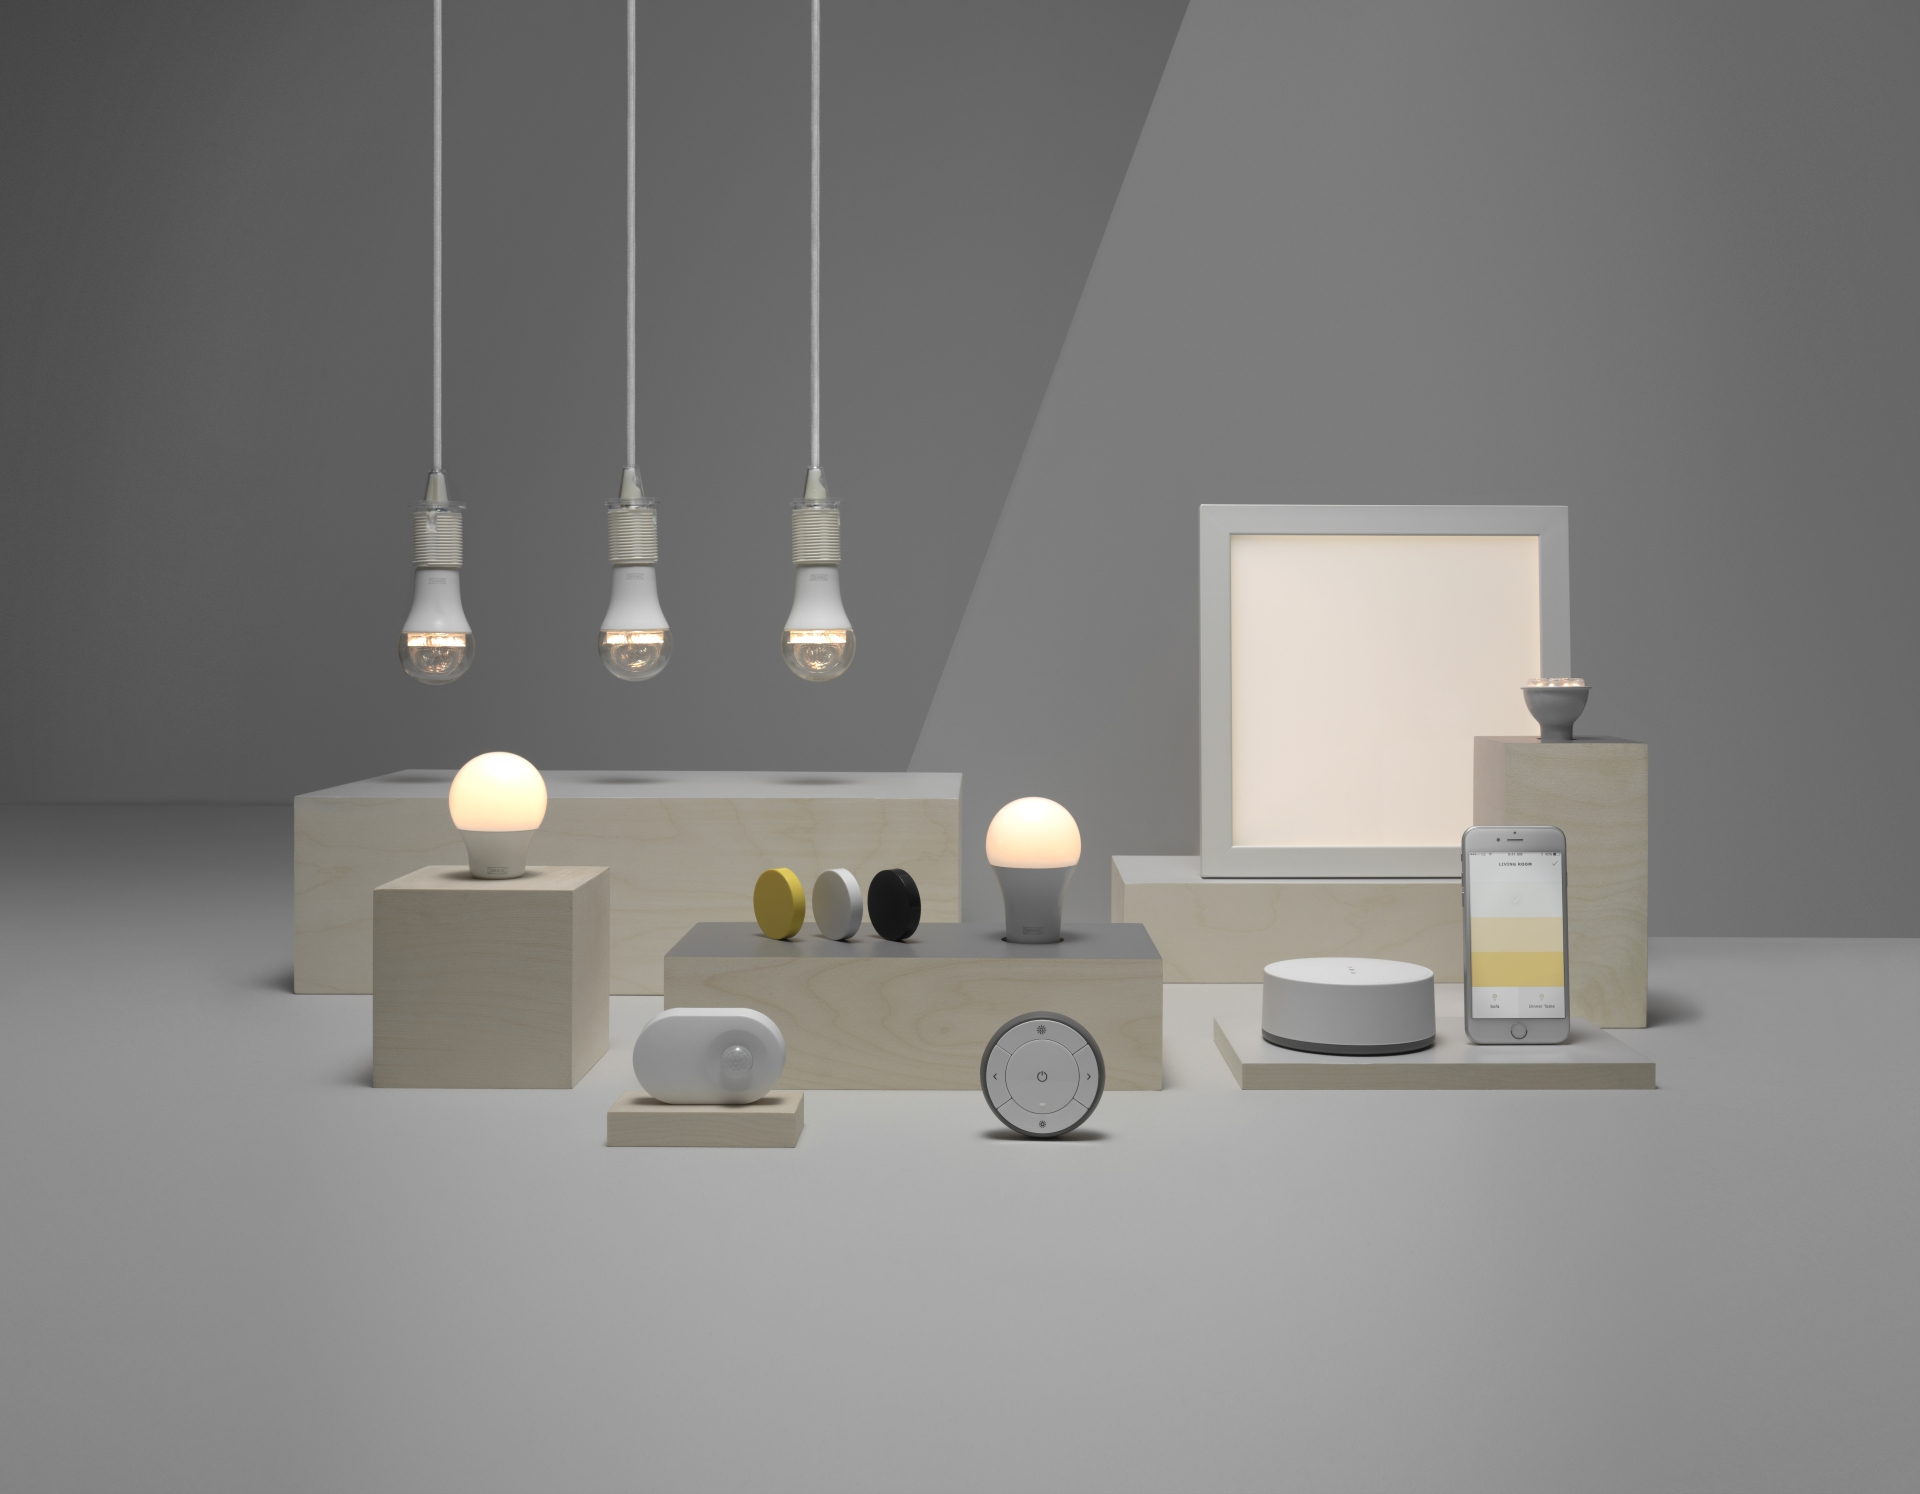 Smart Lighting Ikea S Affordable Smart Lights Will Dim With Your Voice